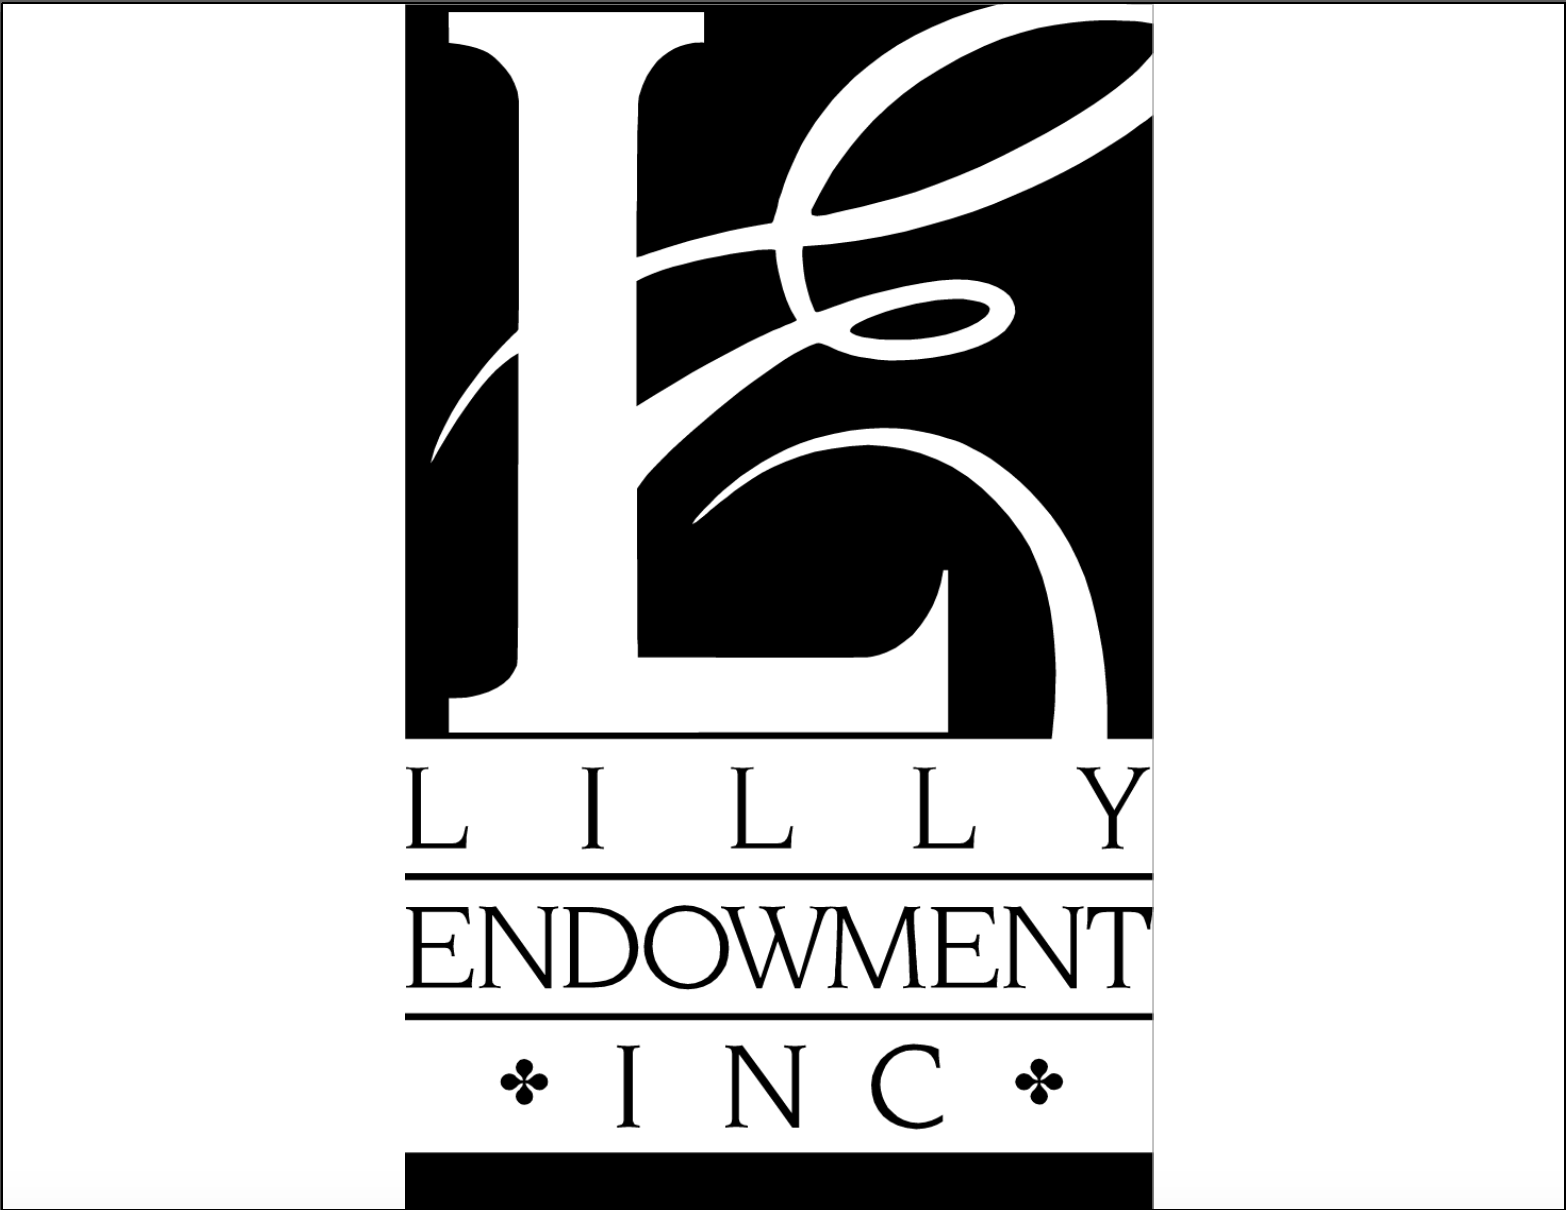 Lilly Endowment Inc grant given for OC theology academy. Online photo